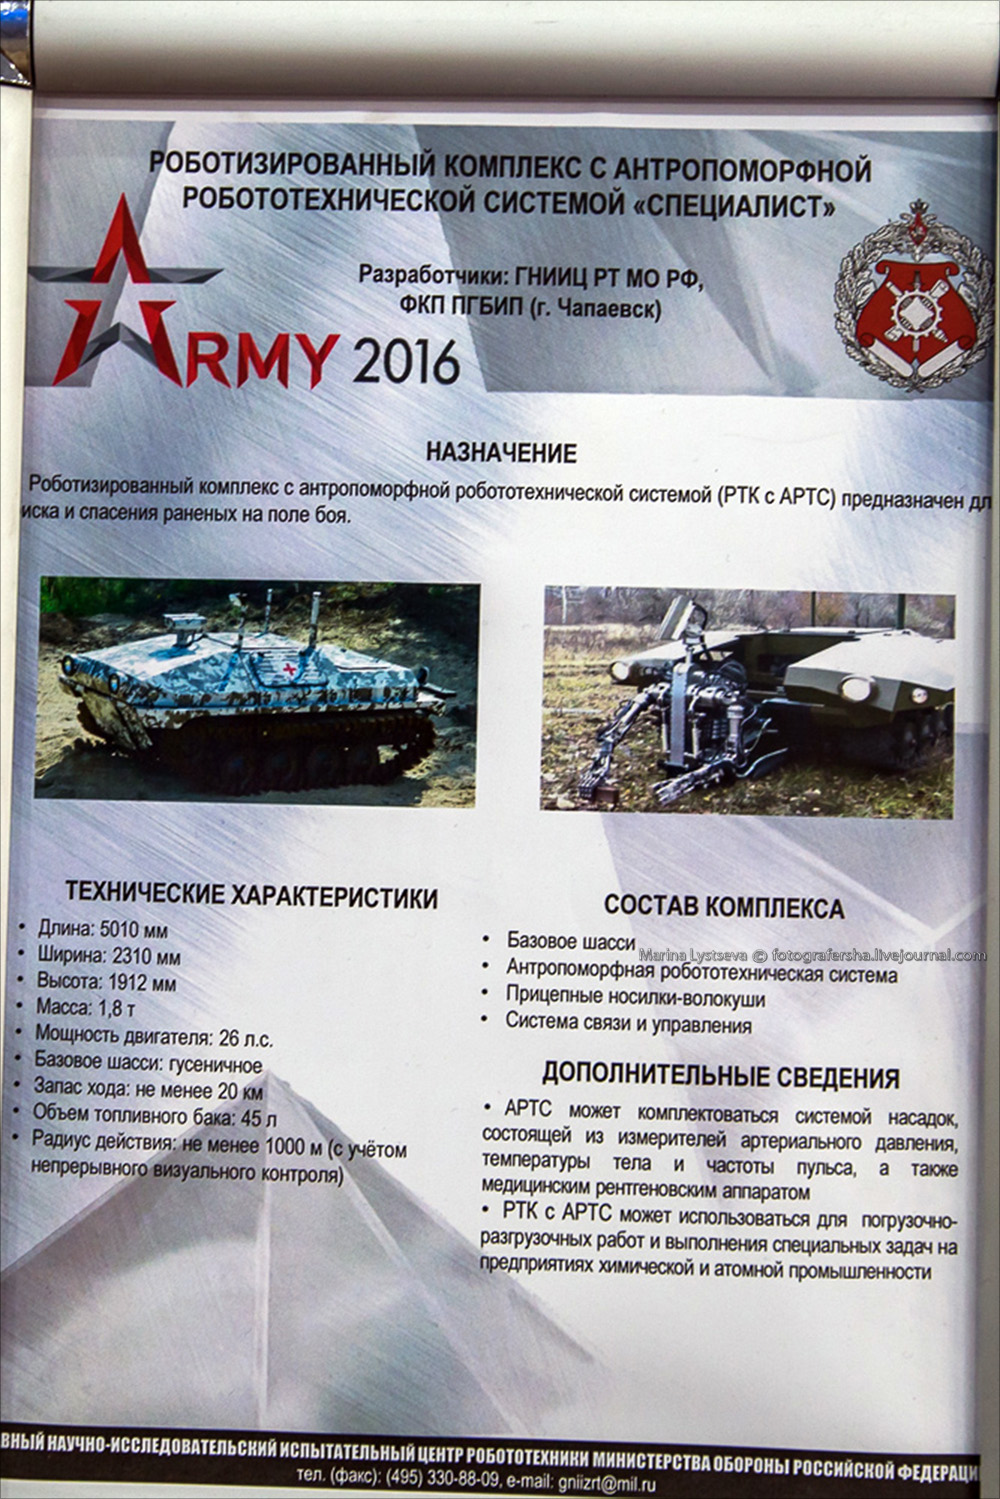 Russian Army Robots - Page 13 0_f026a_cf5b28c9_orig